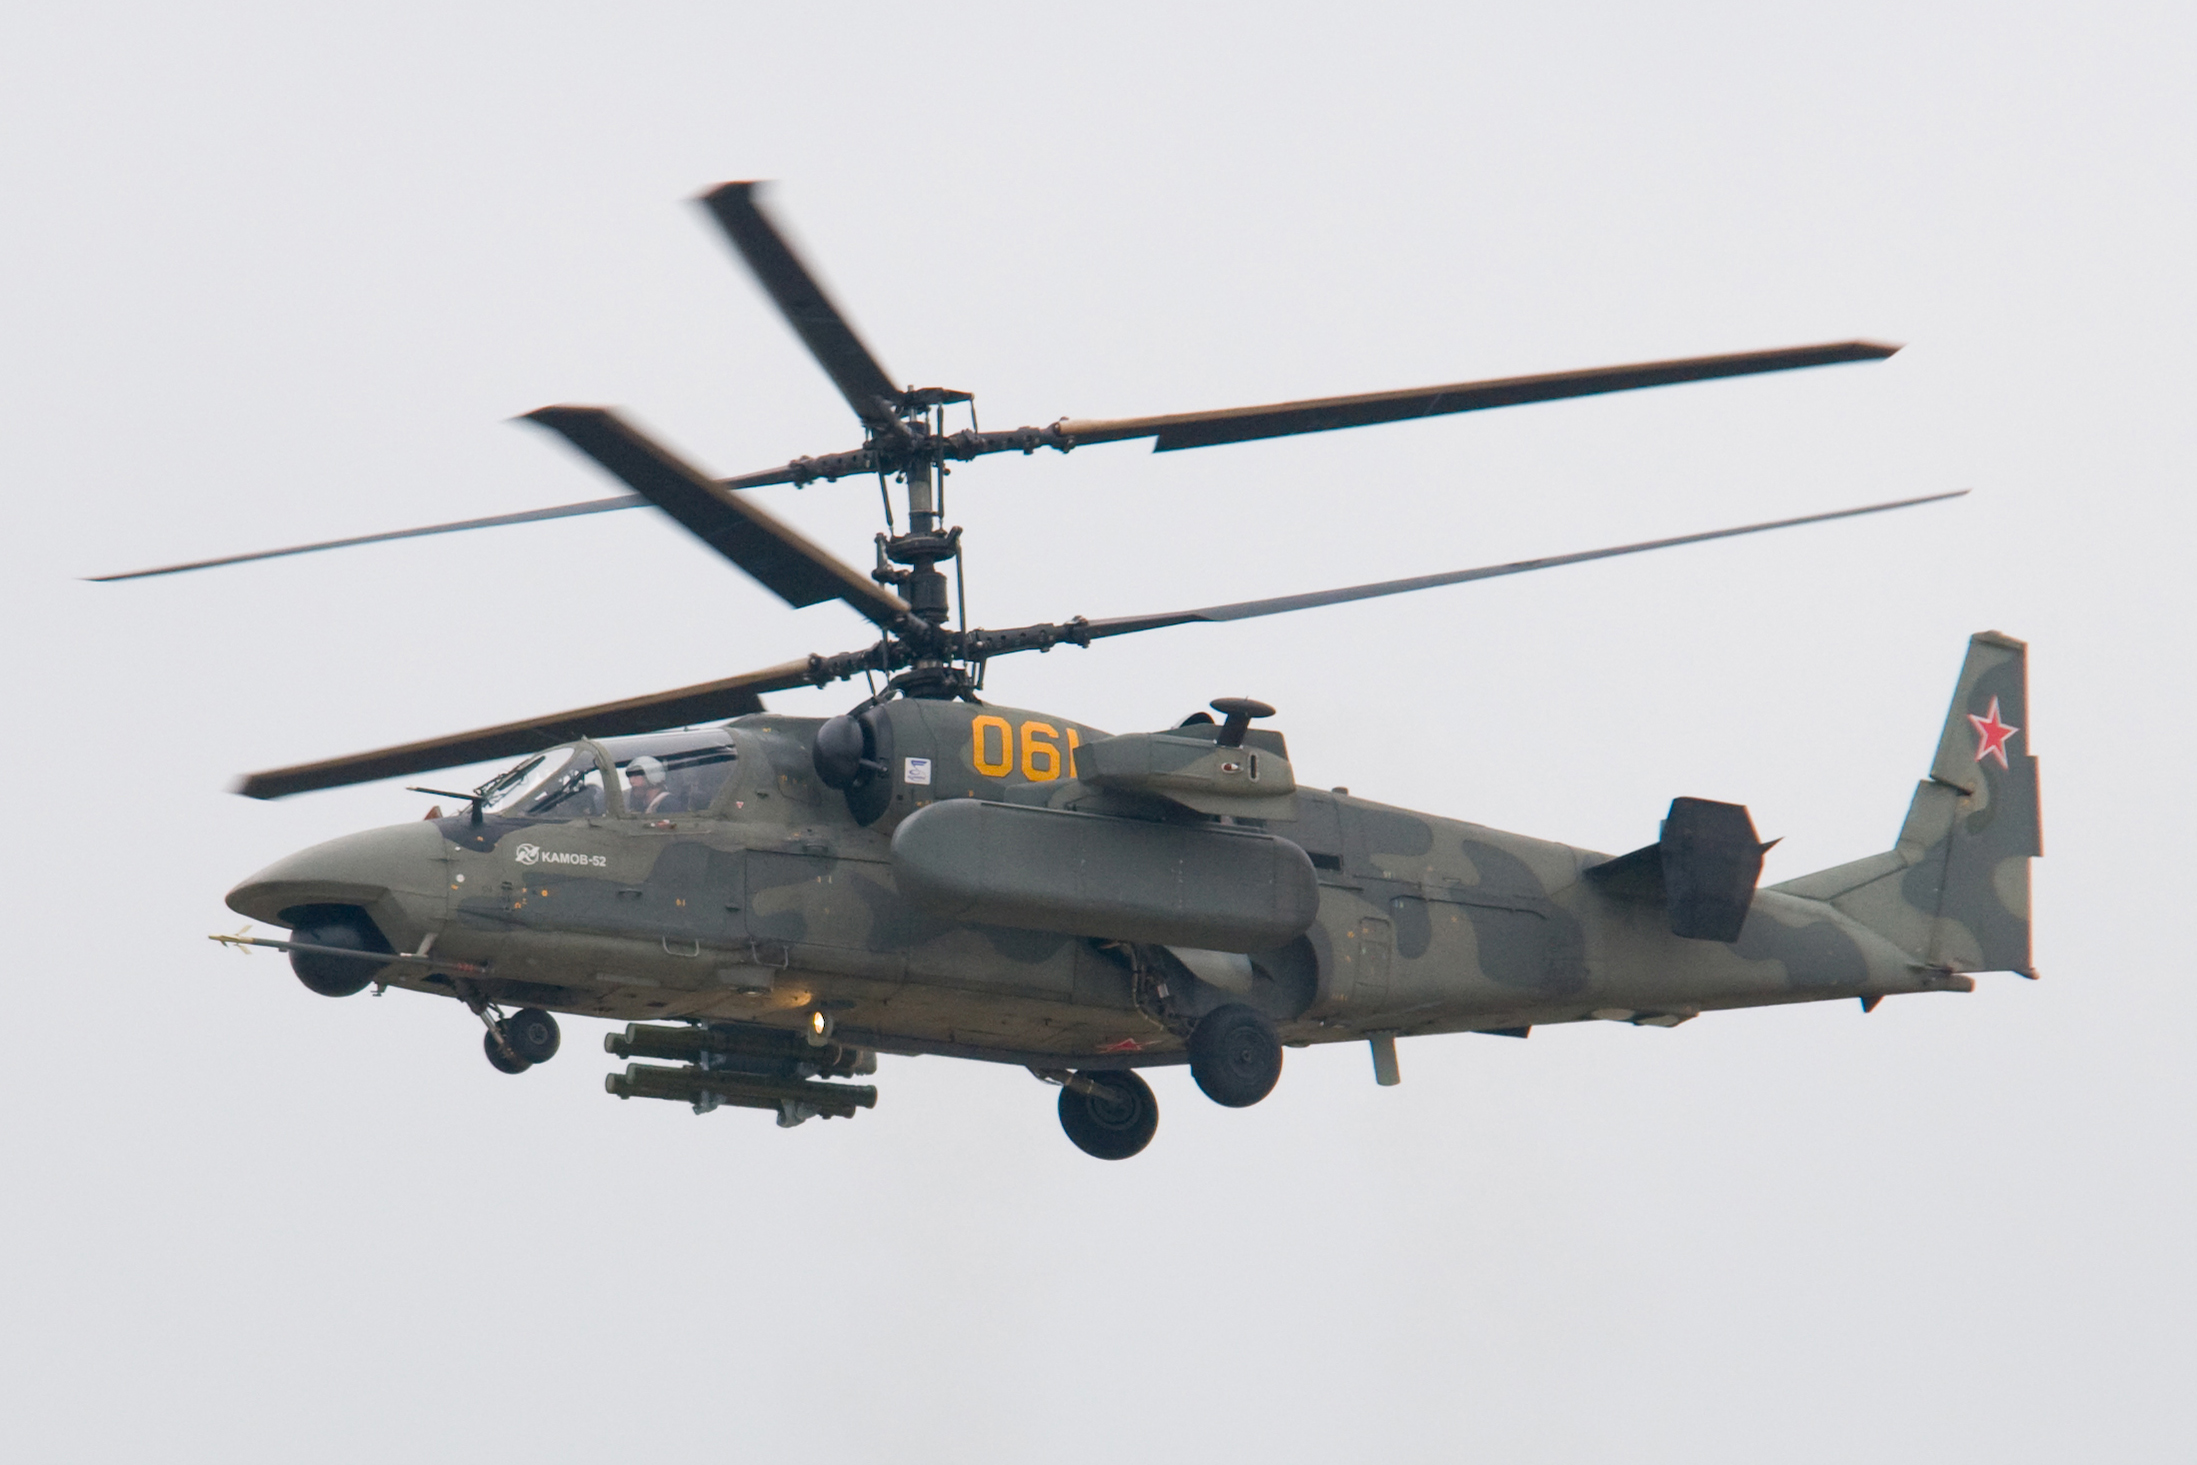 ka 52k helicopter with ファイル Ka 52 At Maks 2009 on Russia To Test New Ship Based Helicopters In Syria 612665 additionally ファイル Ka 52 at MAKS 2009 besides Url together with Russia To Supply Egypt With 46 Ka 52k Naval Attack Helicopters 66214 also 3.